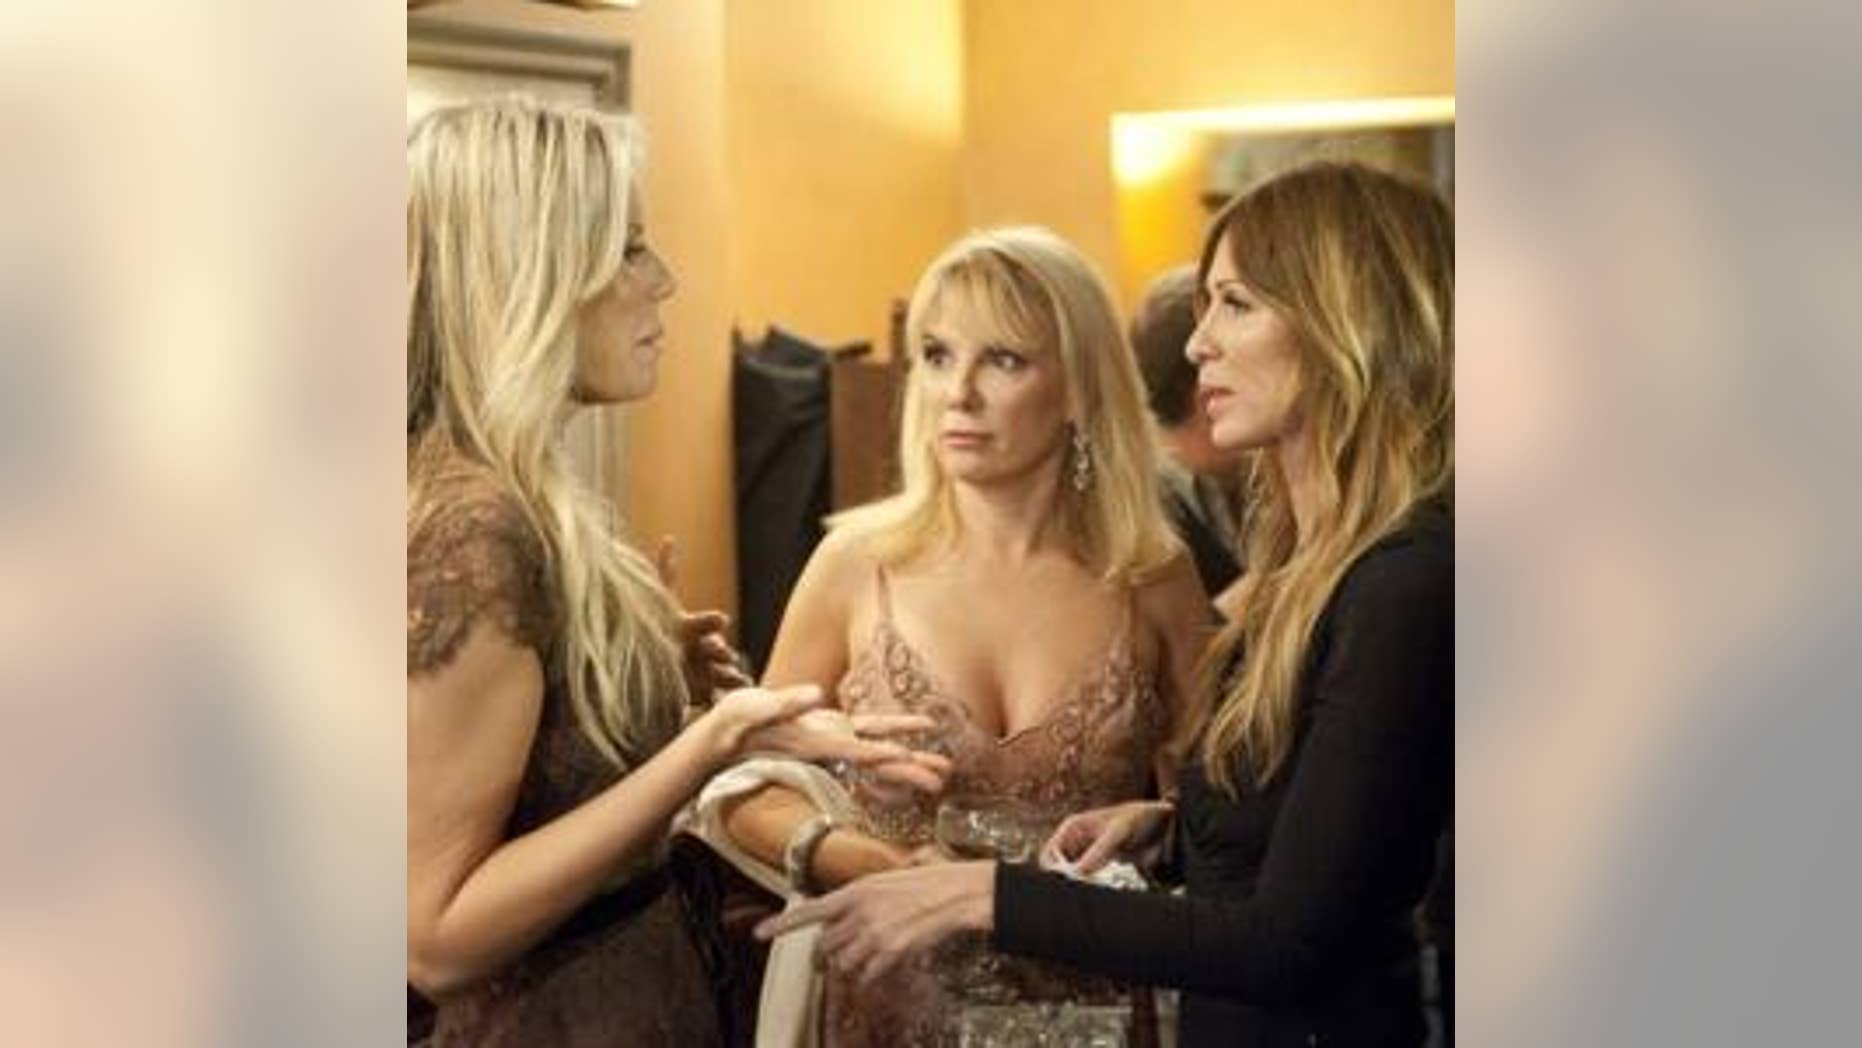 Aviva Drescher (pictured with Ramona Singer and Carole Radziwill) lost her left leg as a child.